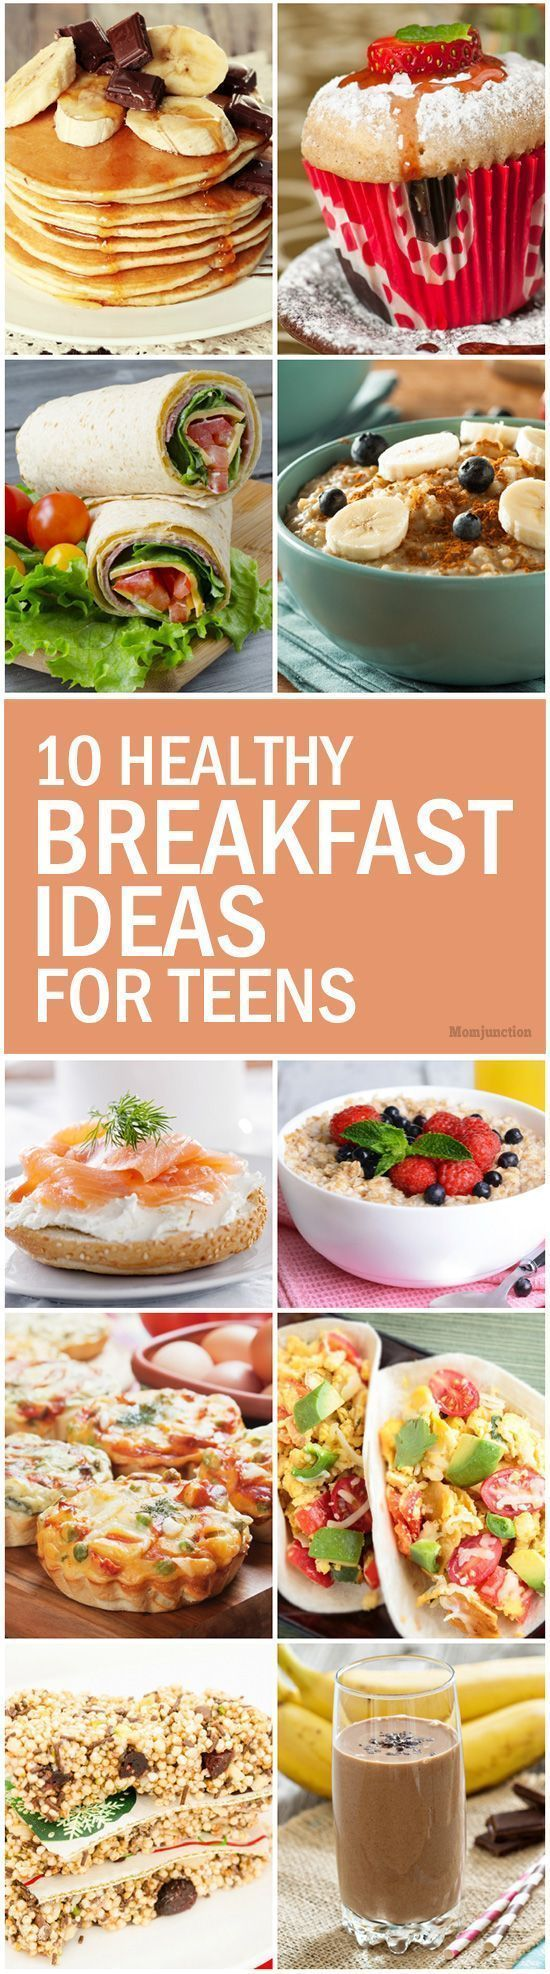 top 25 easy and healthy breakfast for teens | teen topics